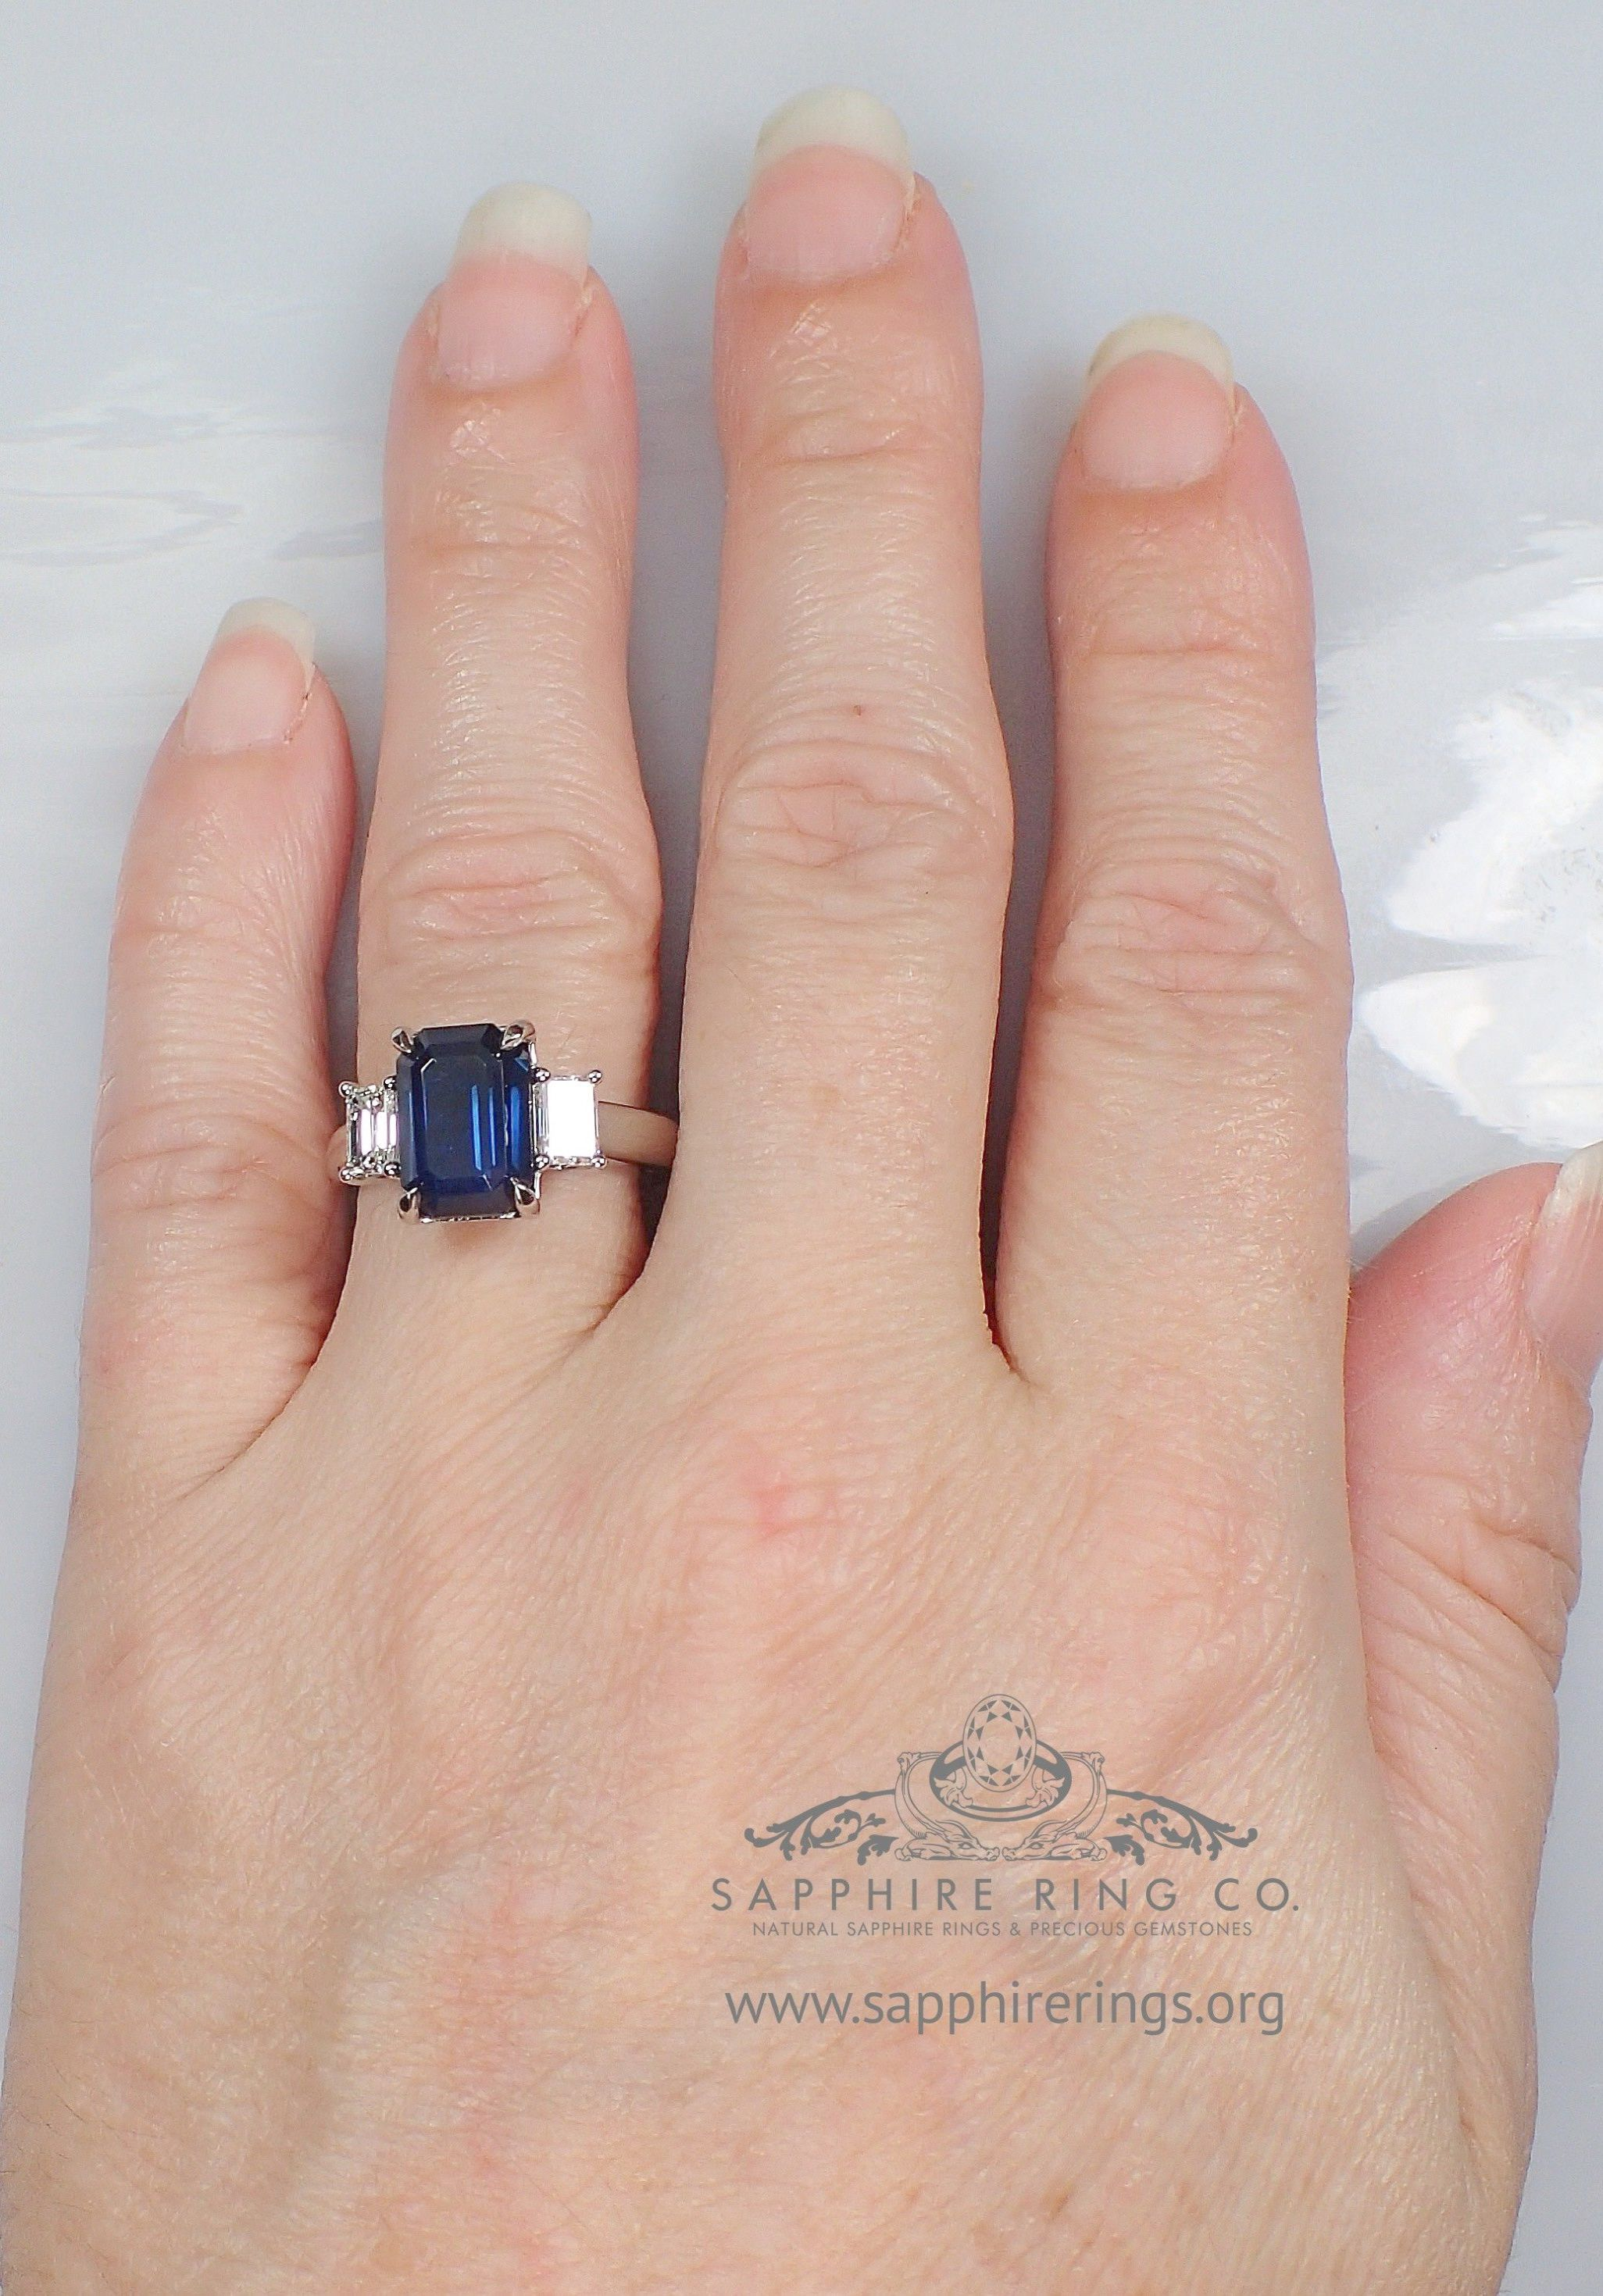 Jewellery Antique Online past Sapphire Rings James Avery